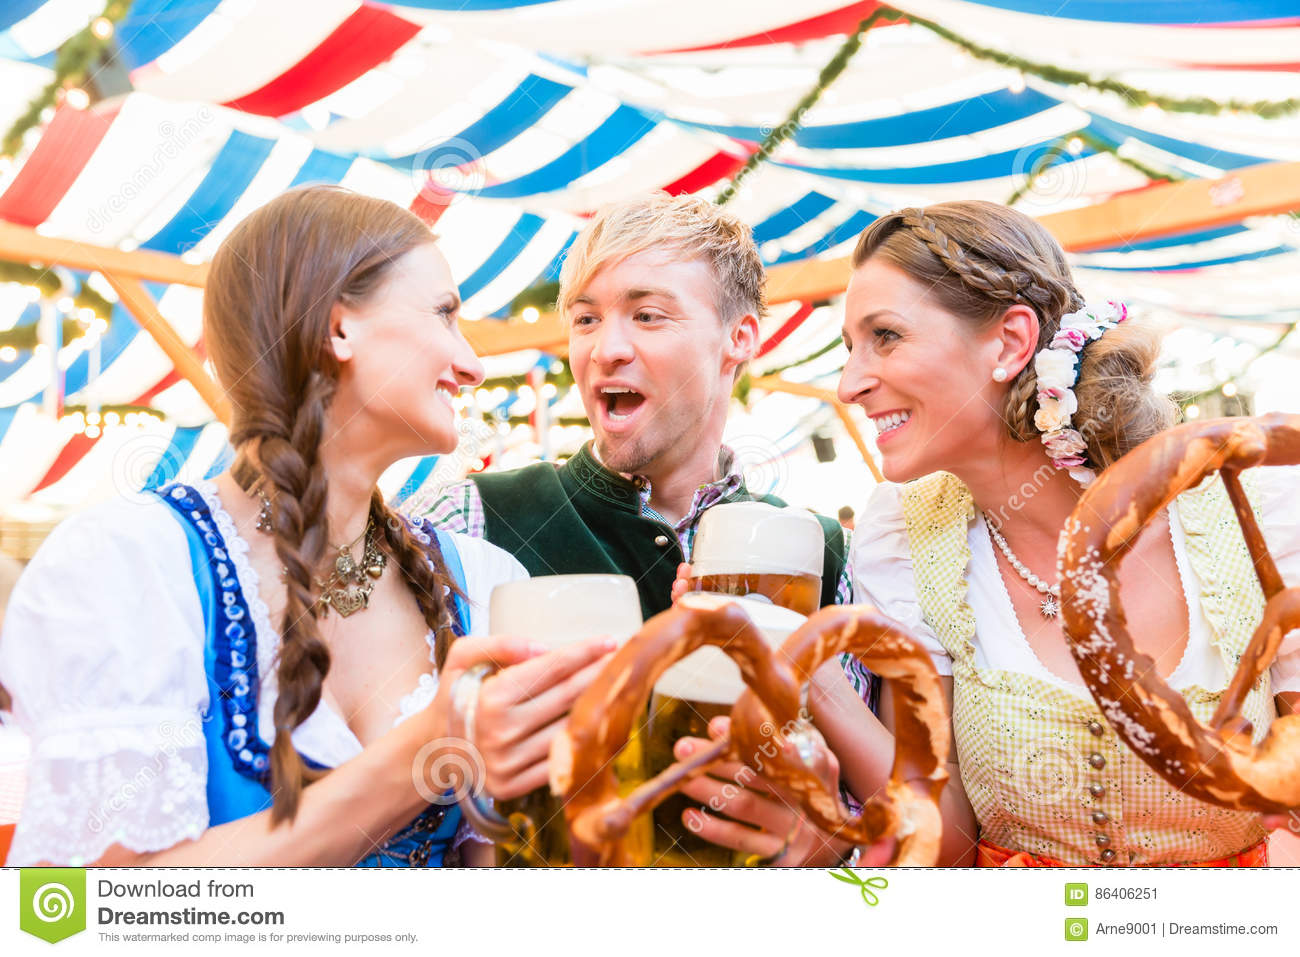 Friends eating giant pretzels and drinking in beer tent